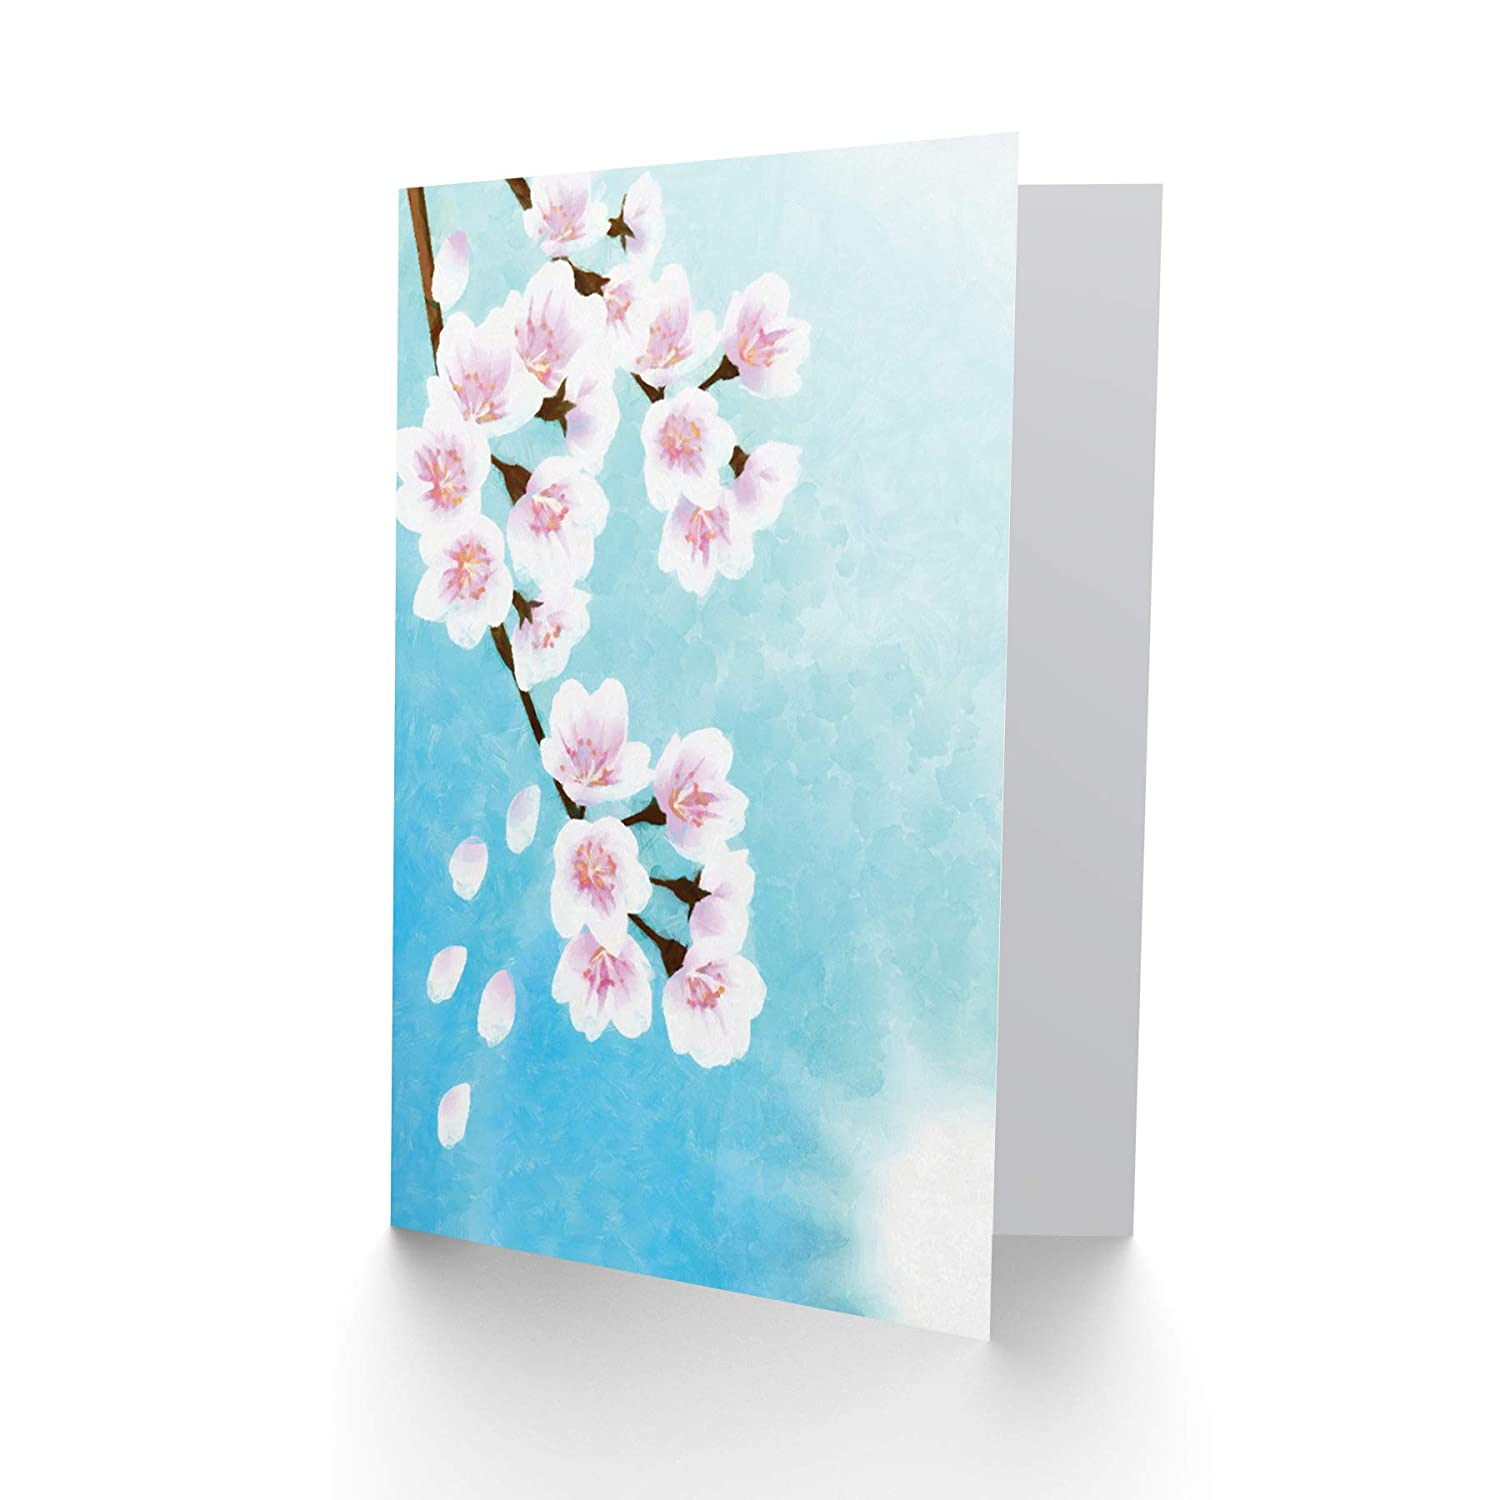 Wee Blue Coo CHERRY BLOSSOM FLORAL FLOWER PAINTING DRAWING BLANK BIRTHDAY CARD